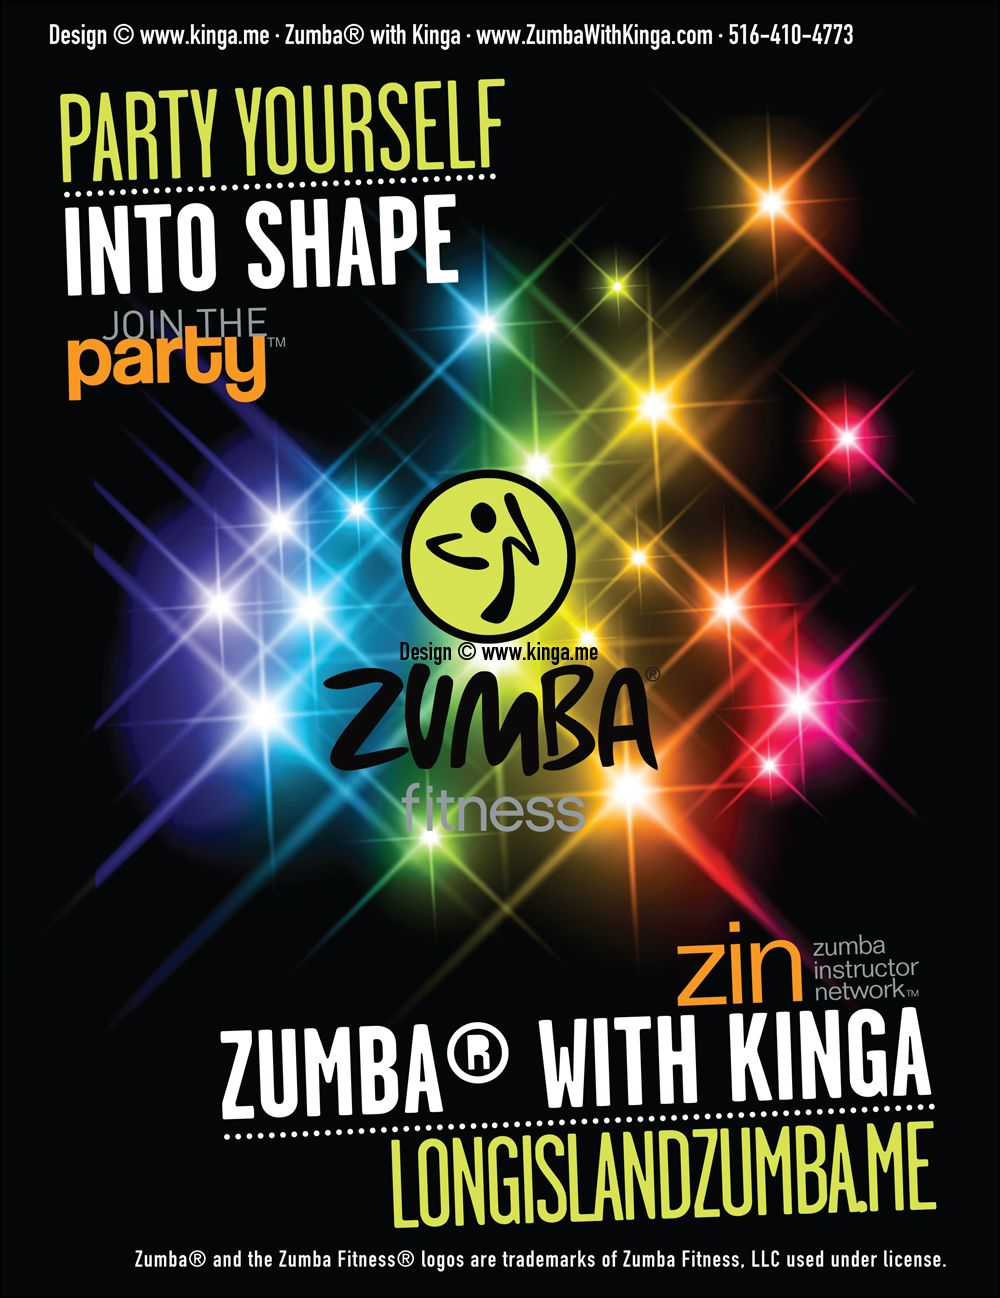 Zumba flyer design zumba flyers - Zumba Flier I Love Zumba Cant Wait To Get Back Into It Full Time Again